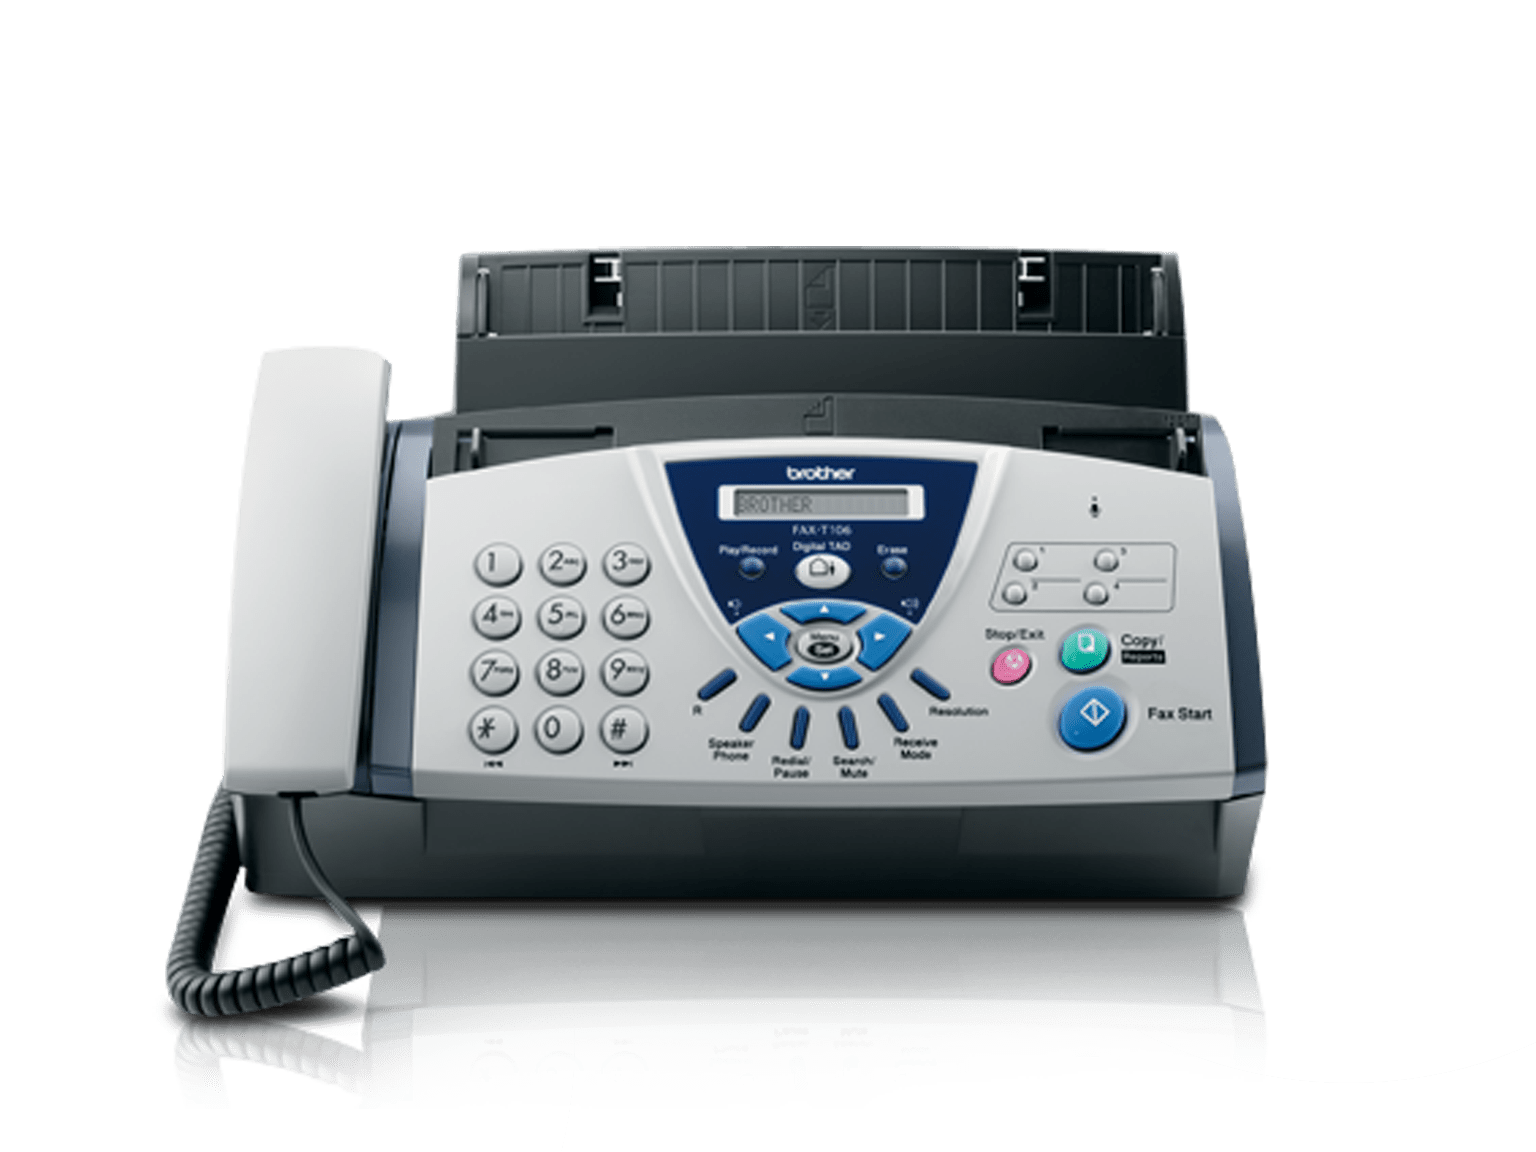 brother termisk fax